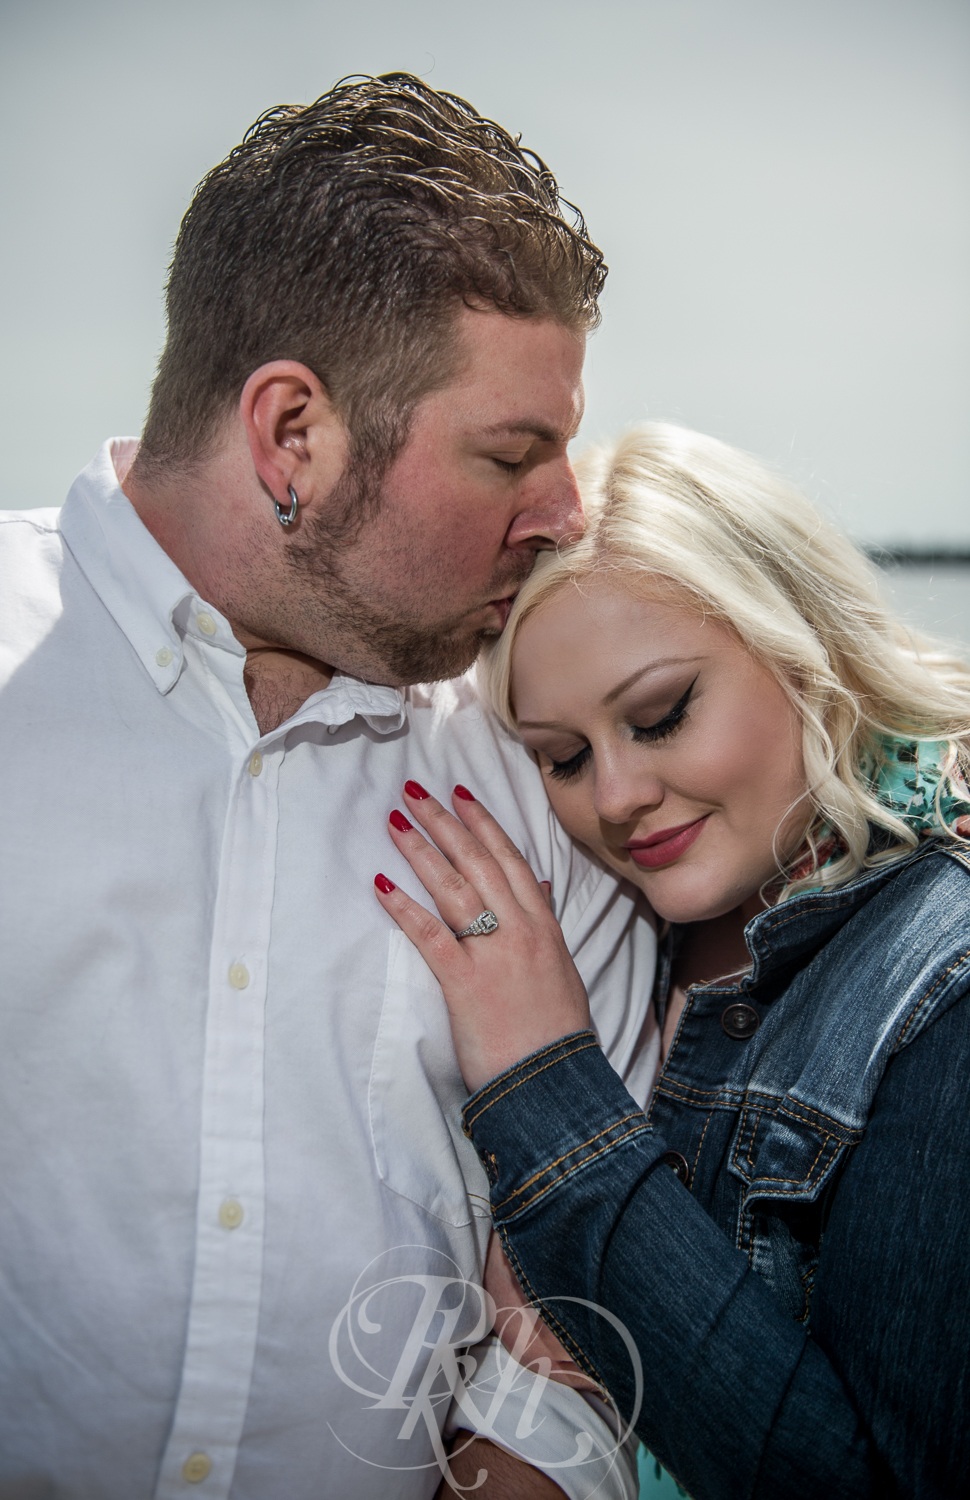 Erica & Shawn - Minnesota Engagement Photography - RKH Images -1.jpg